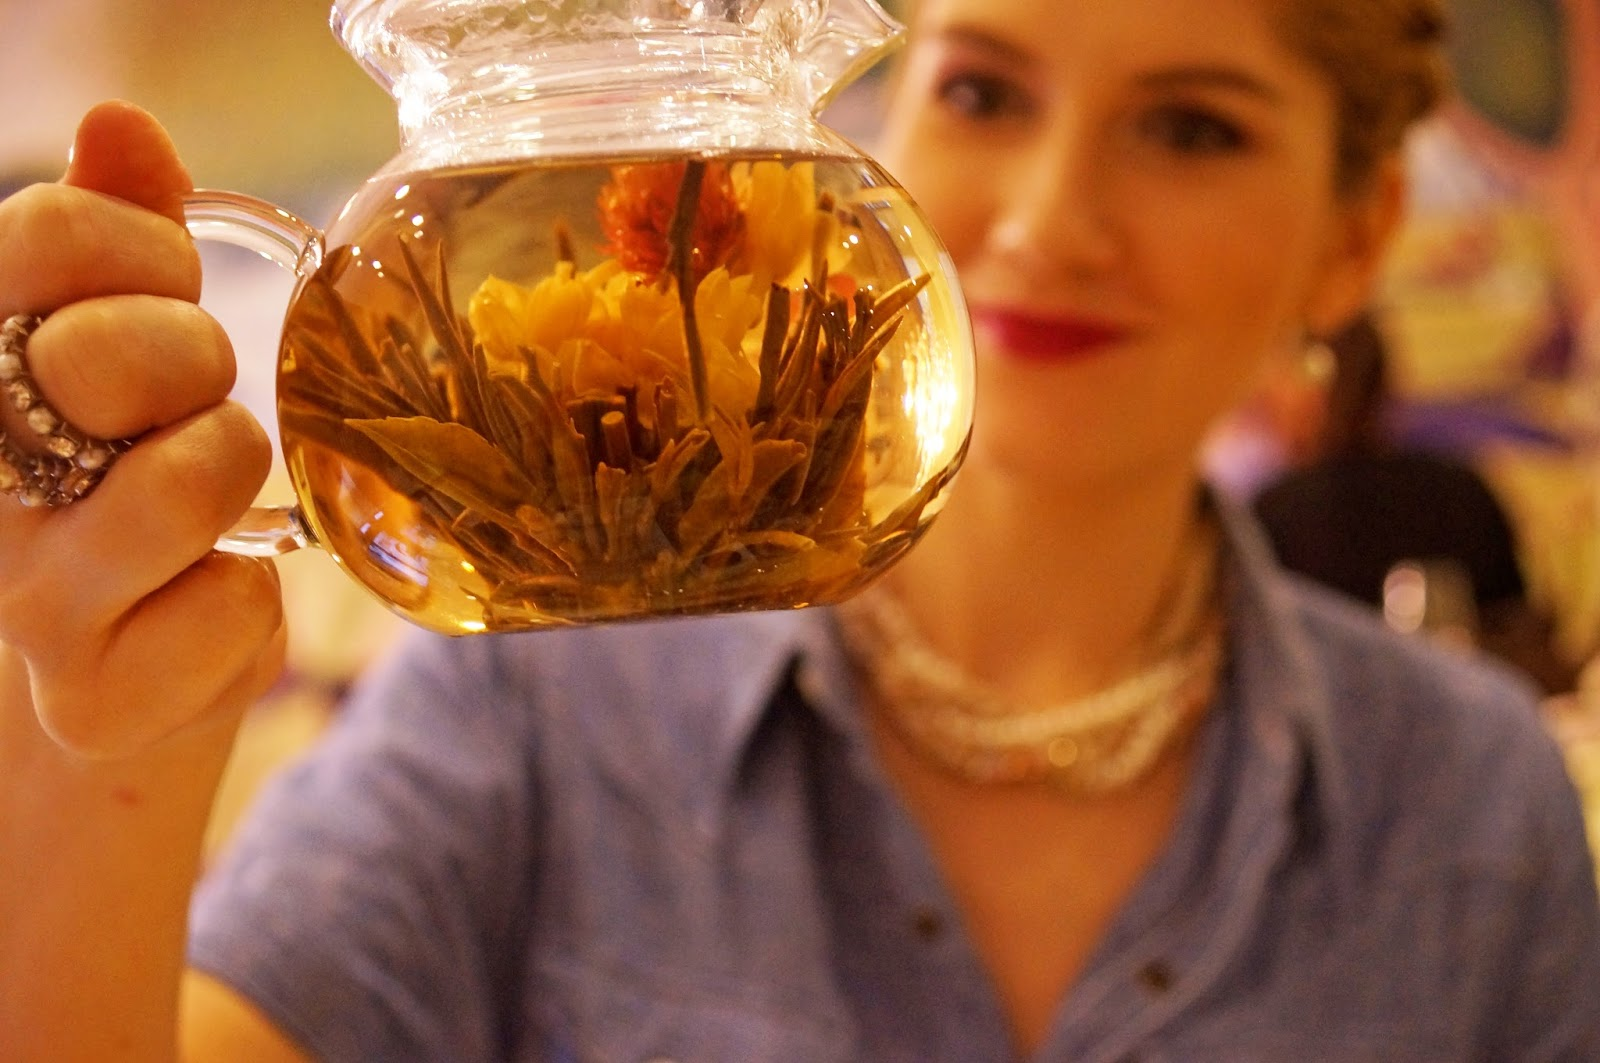 This flower blooms and releases the tea into your tea pot! Awesomeness!